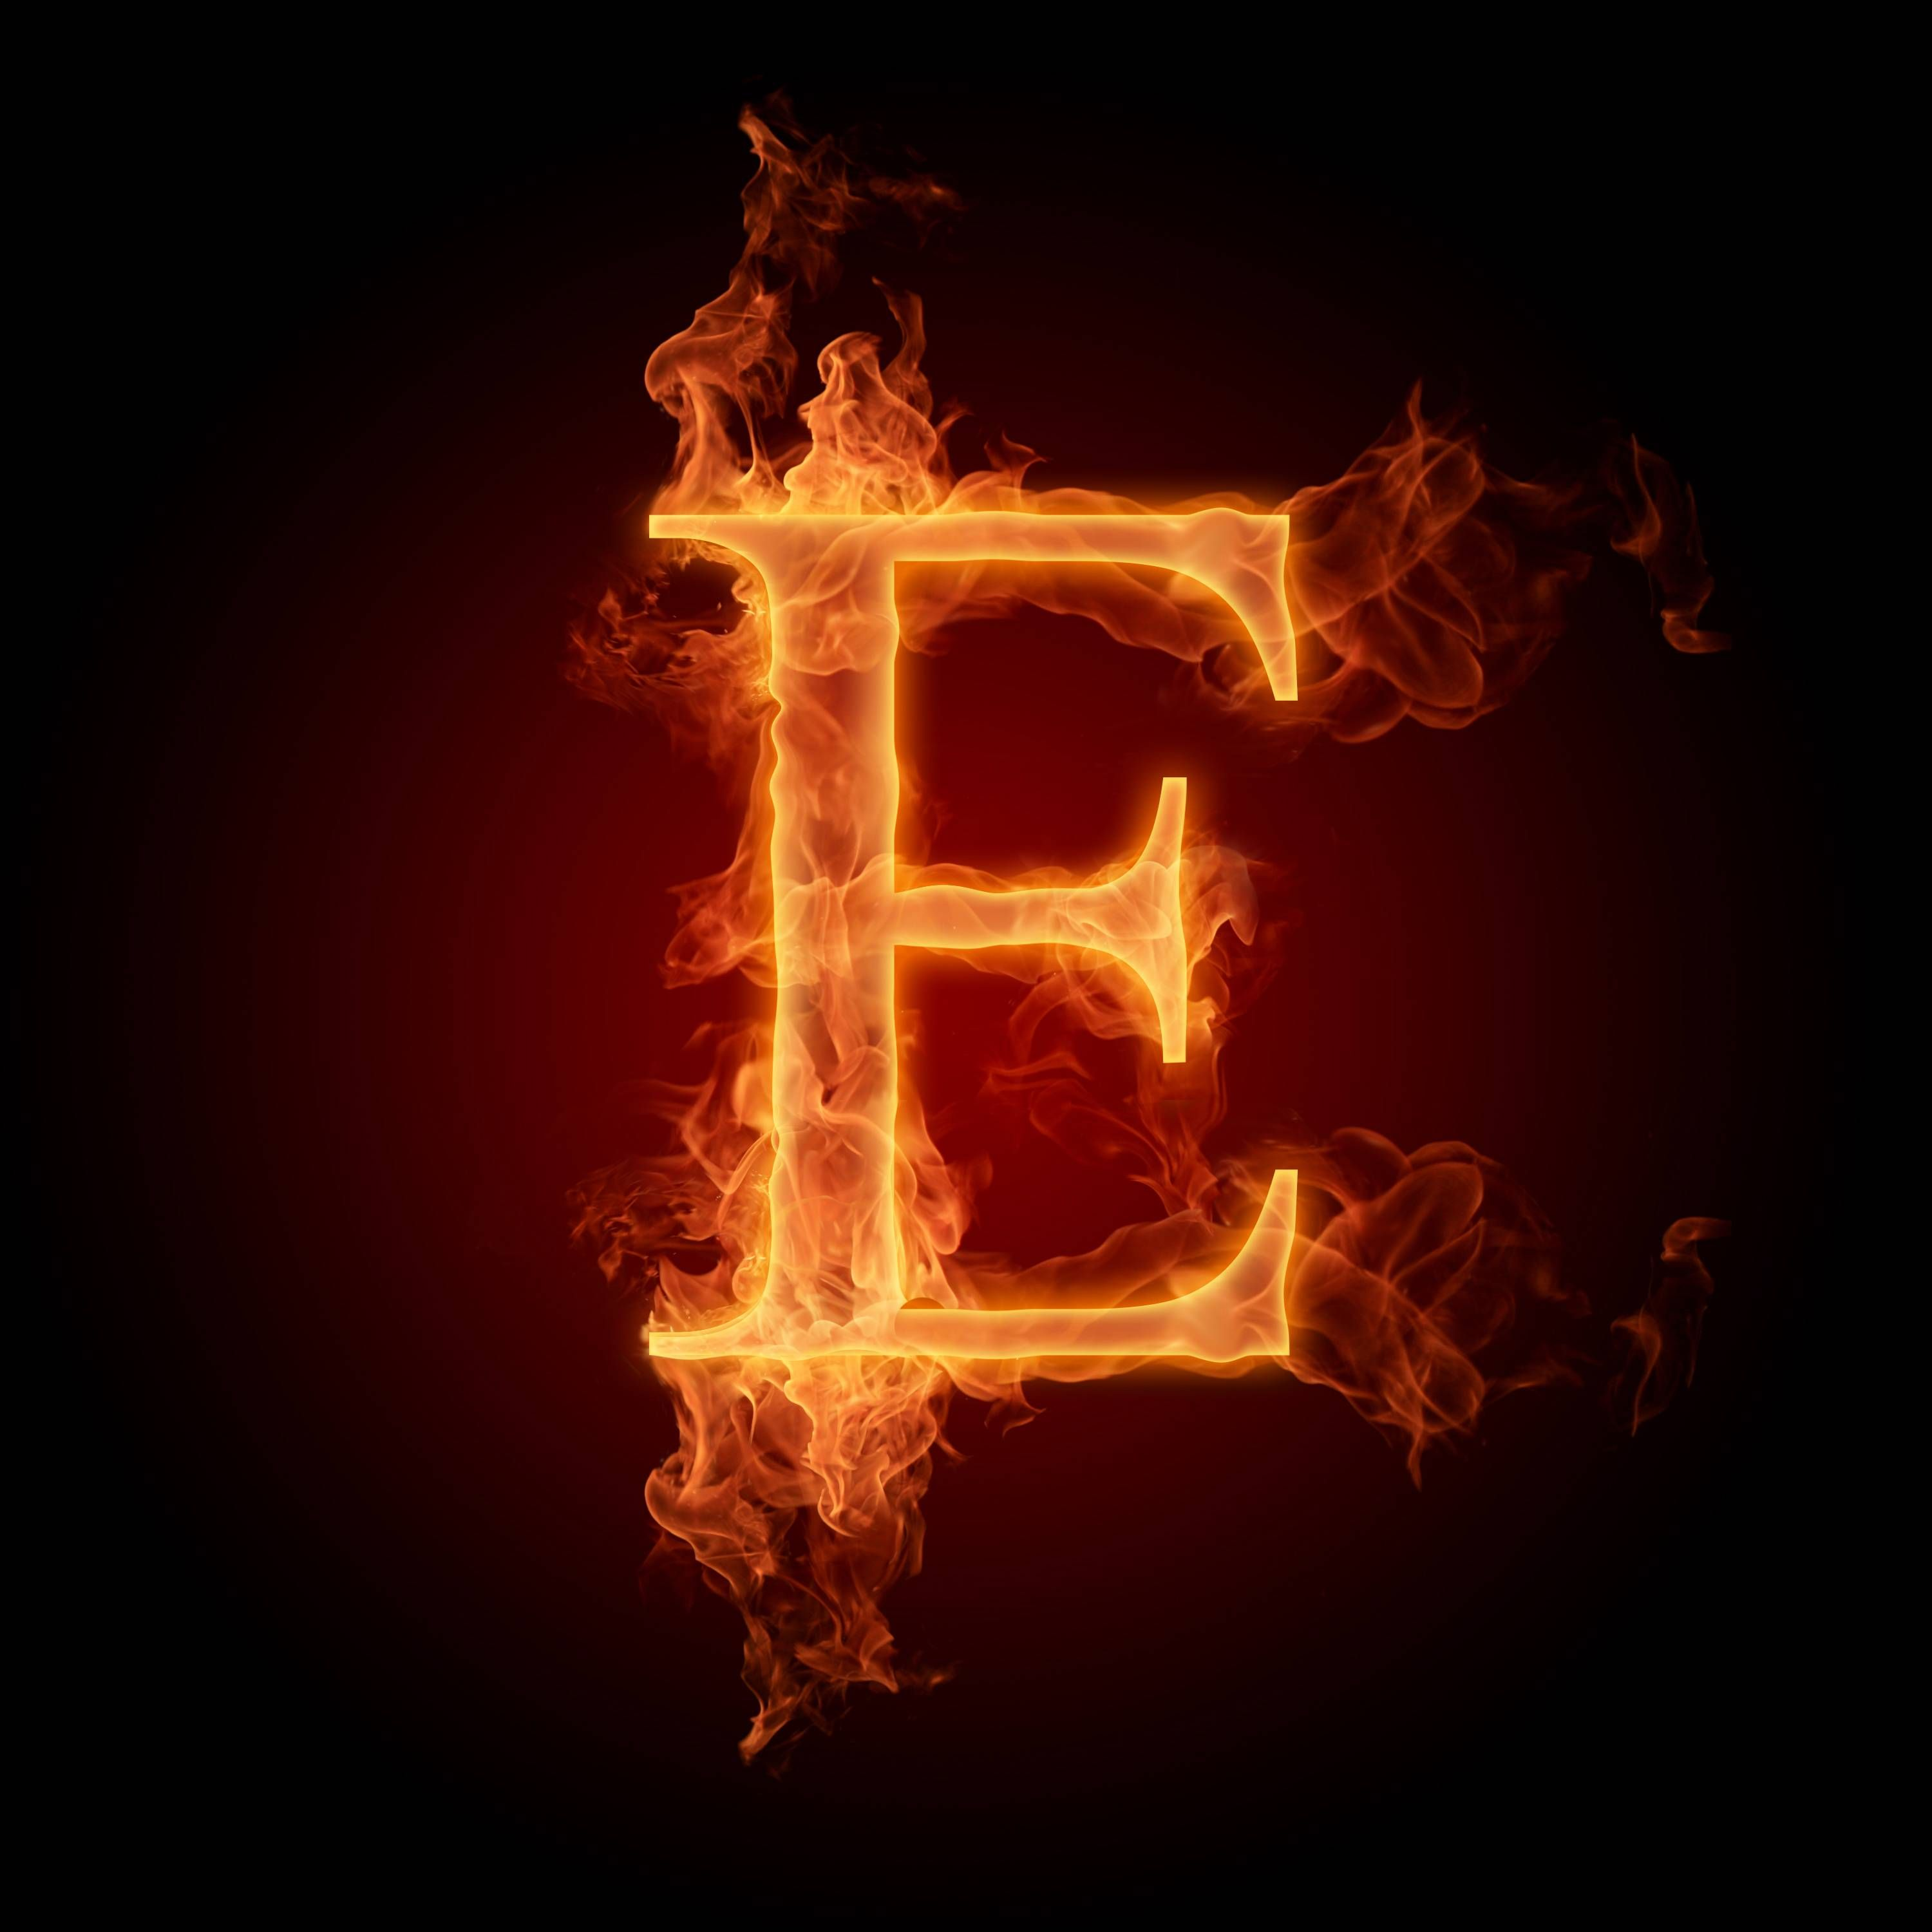 Burning Letters Wallpapers E 270x180 Burning Fire Letters/Alphabets A to Z Wallpapers   Shoes ...